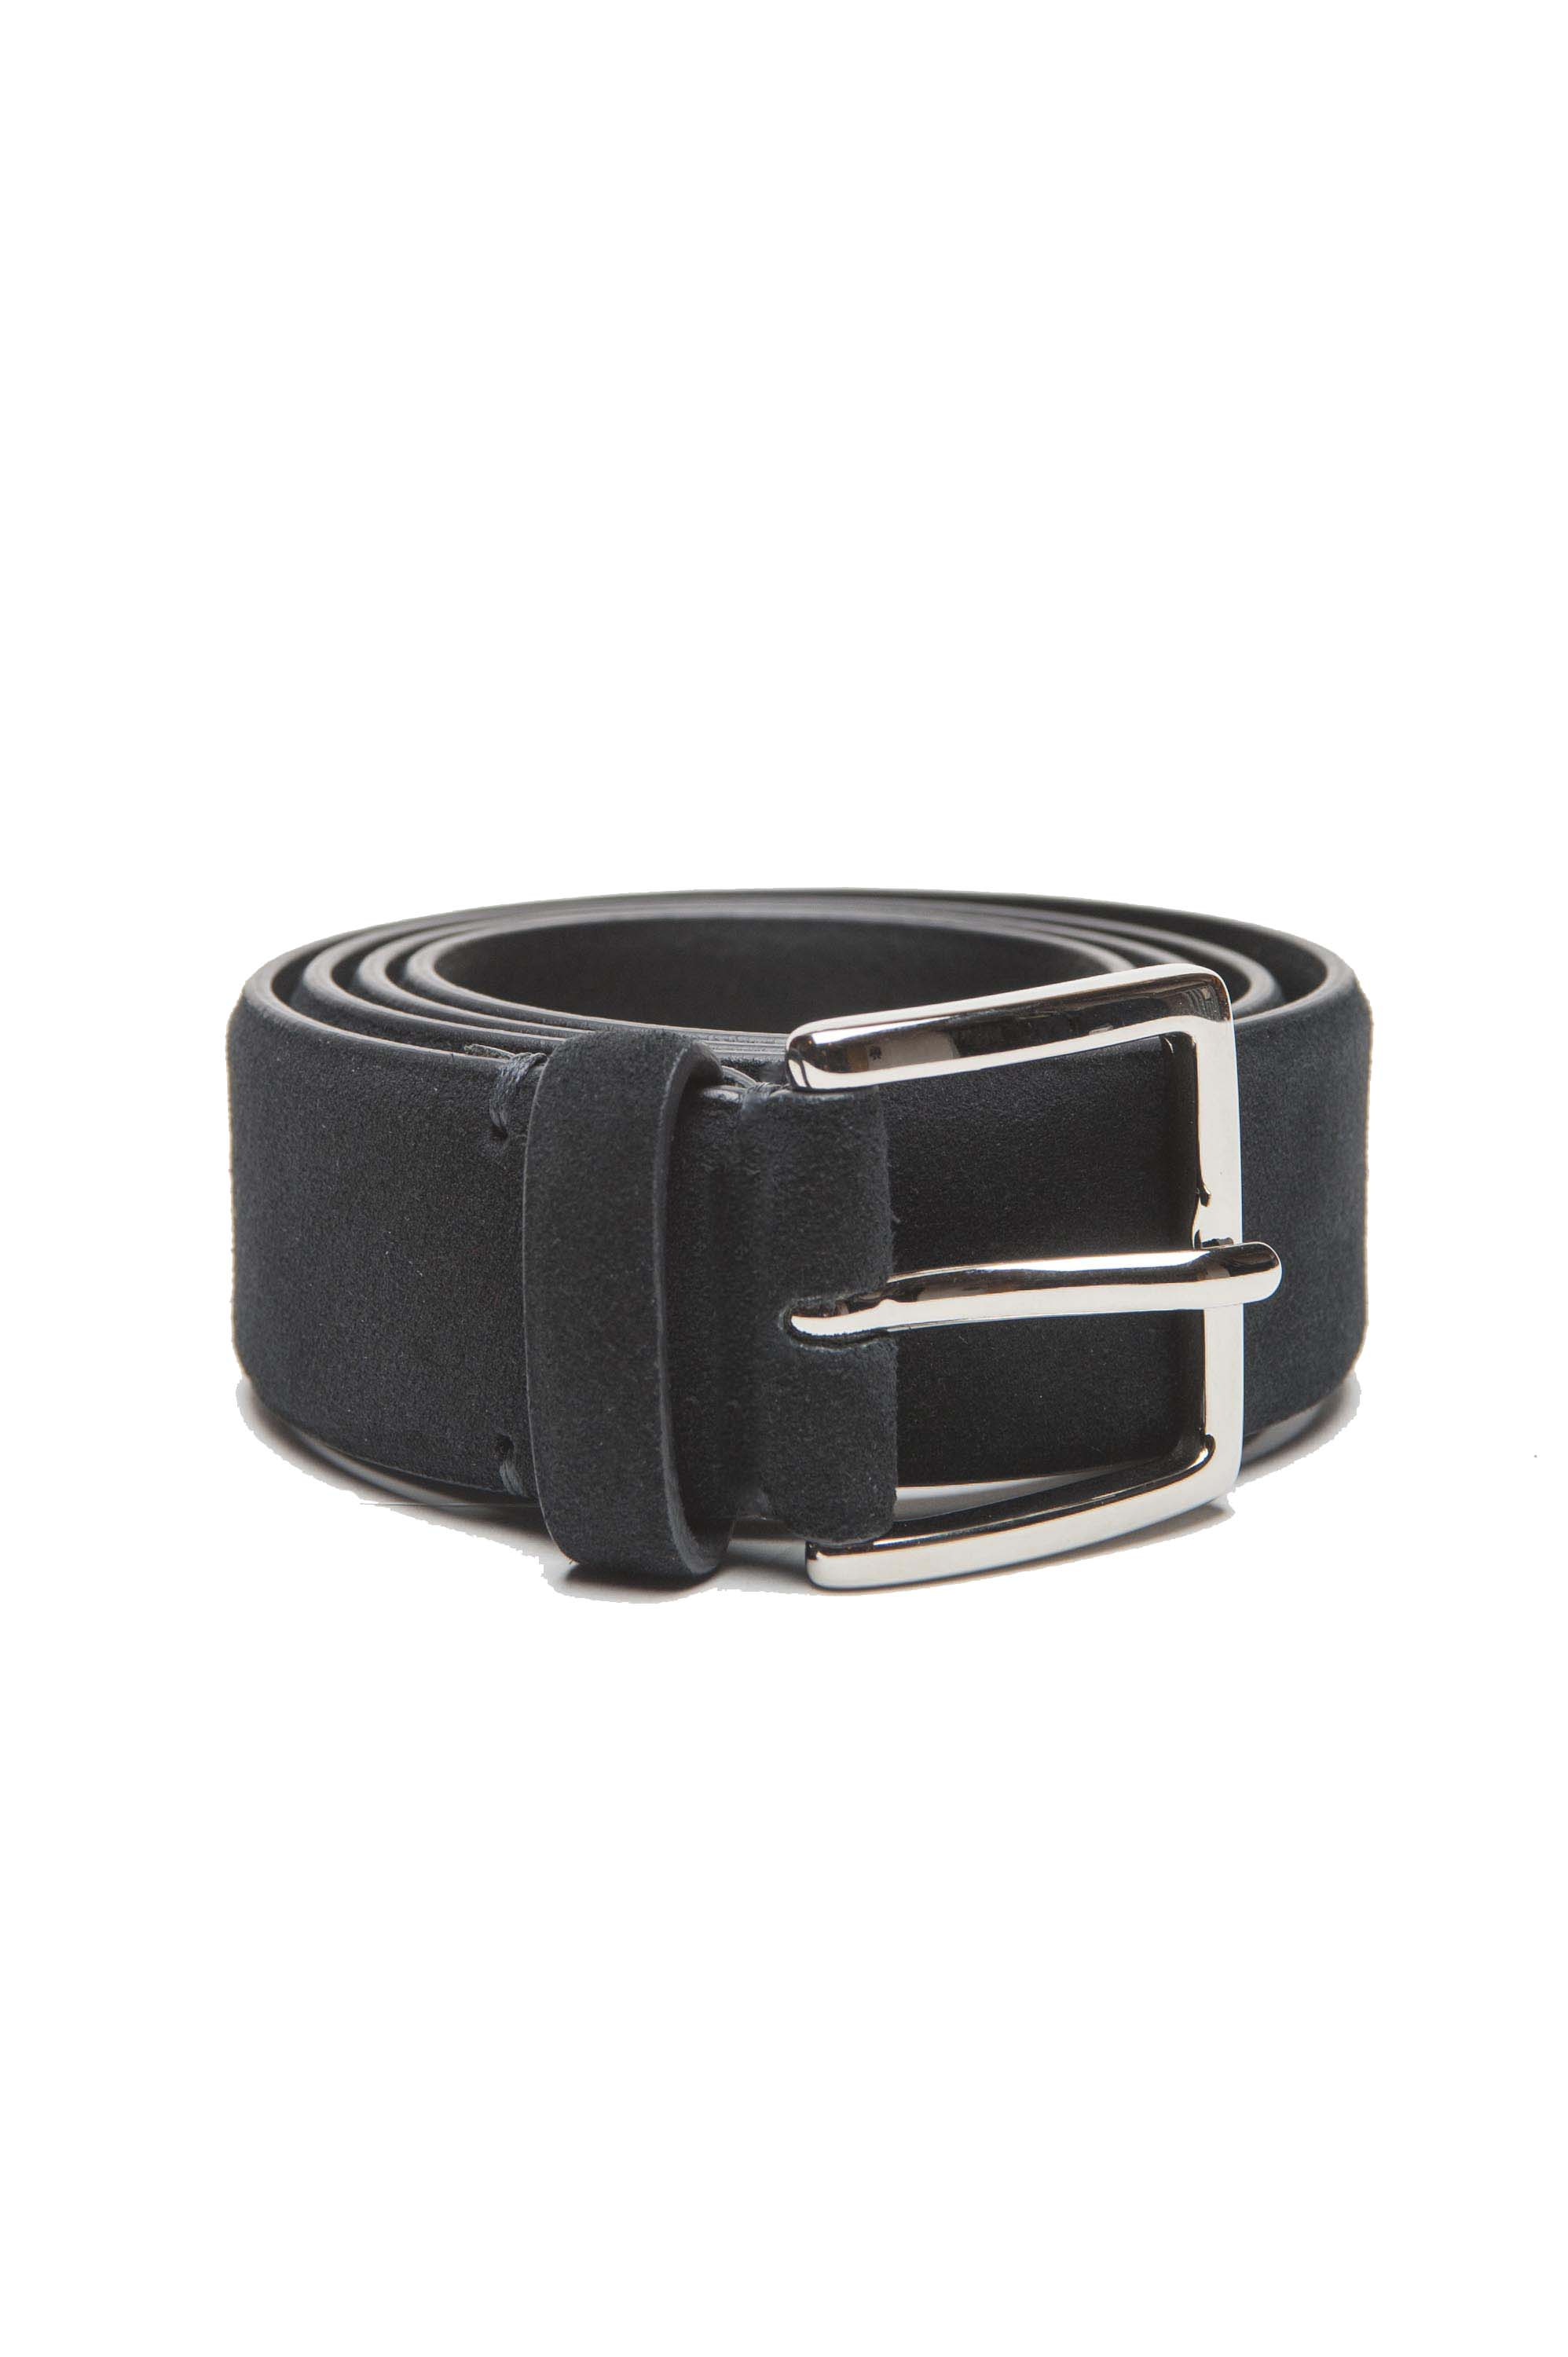 SBU Belts Autumn Winter 2020 Collection